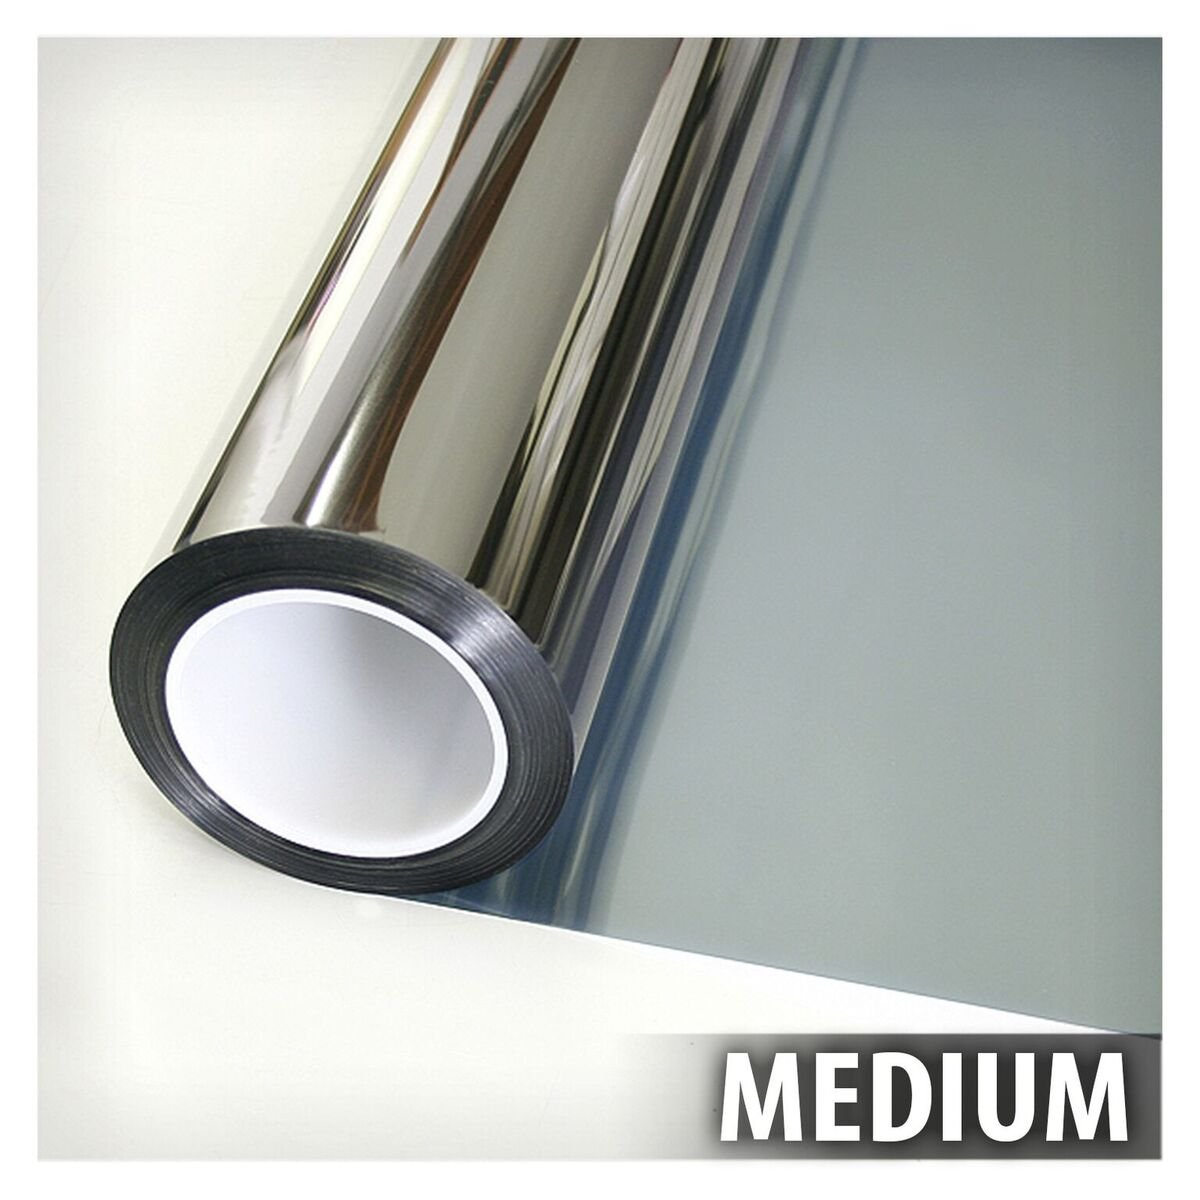 BDF EXS35 EXTERIOR Window Film High Heat Rejection Silver 35 (Medium) - 36in X 50ft by Buydecorativefilm (Image #3)